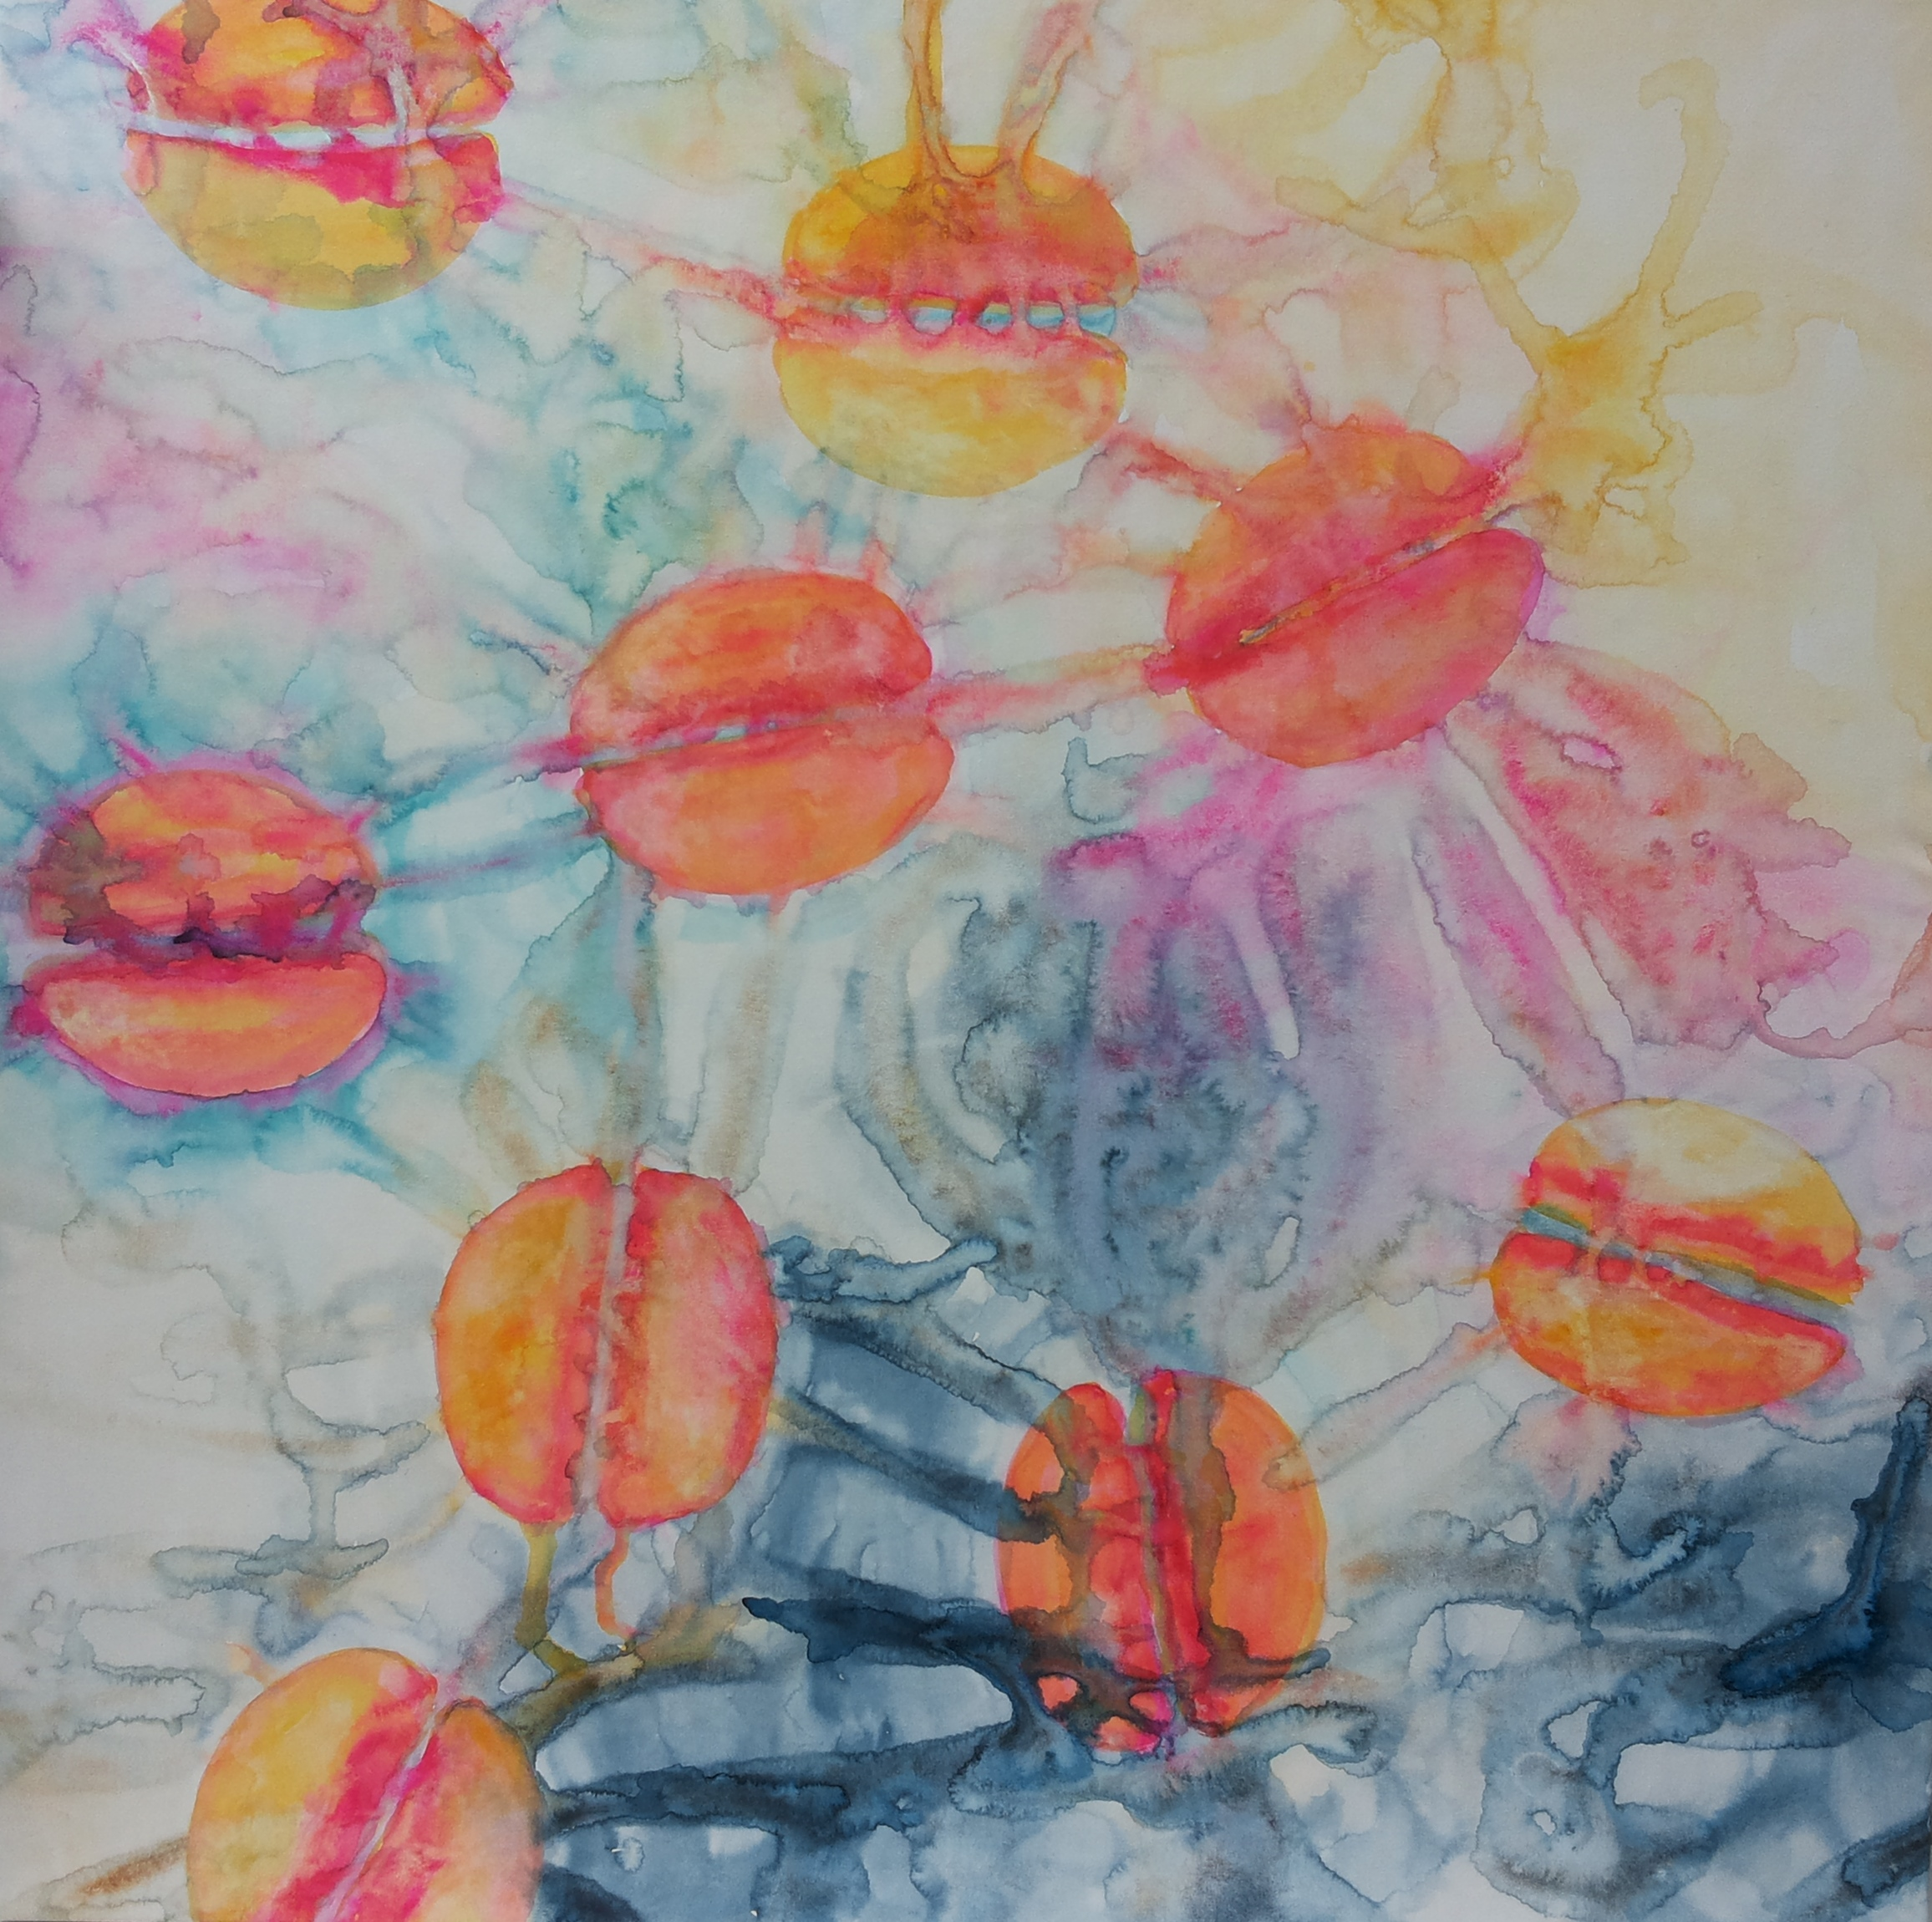 ID 11 Watercolor on canvas On Bees and Flowers, Tulips 2014 ca 140x140 cm